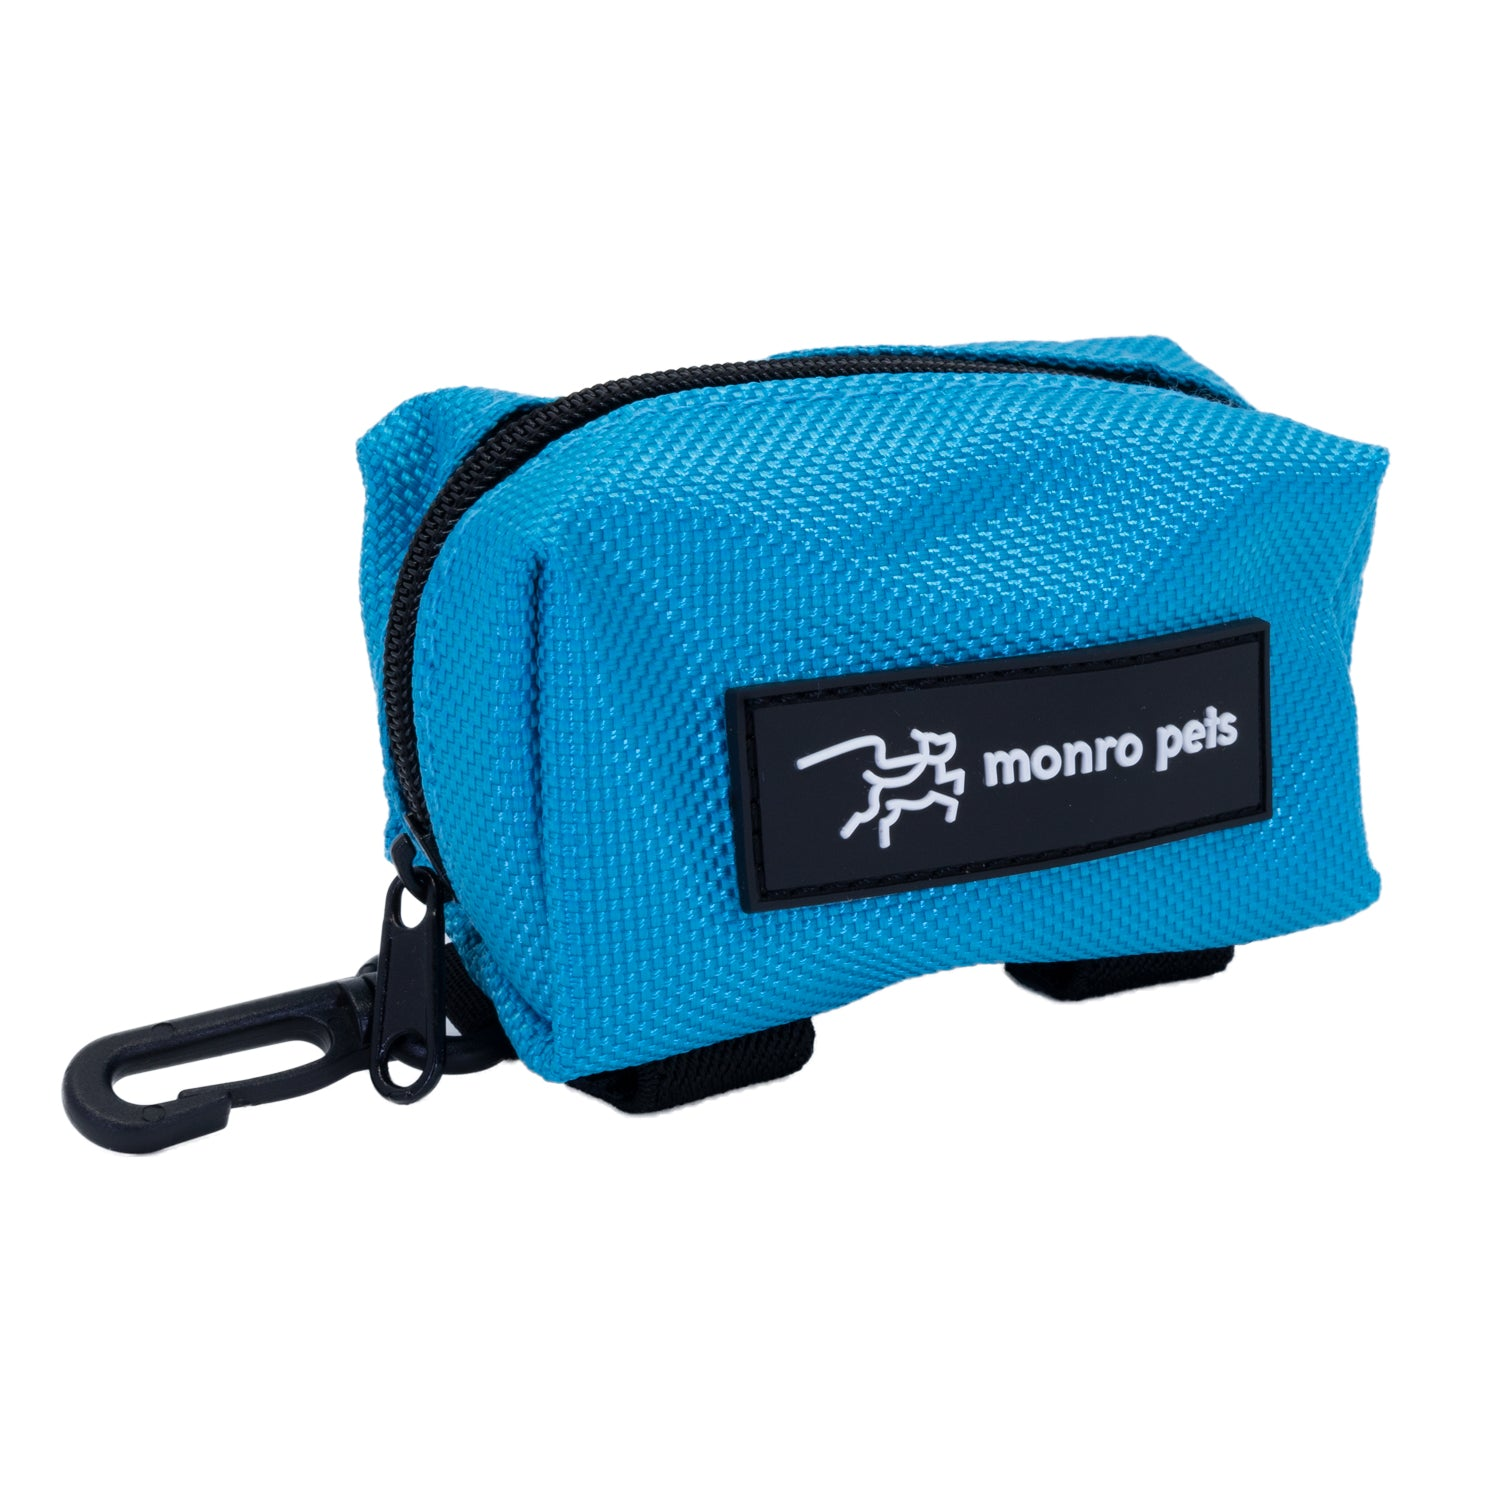 dog-bag-carrier-poop-bag-holder-carolina-blue